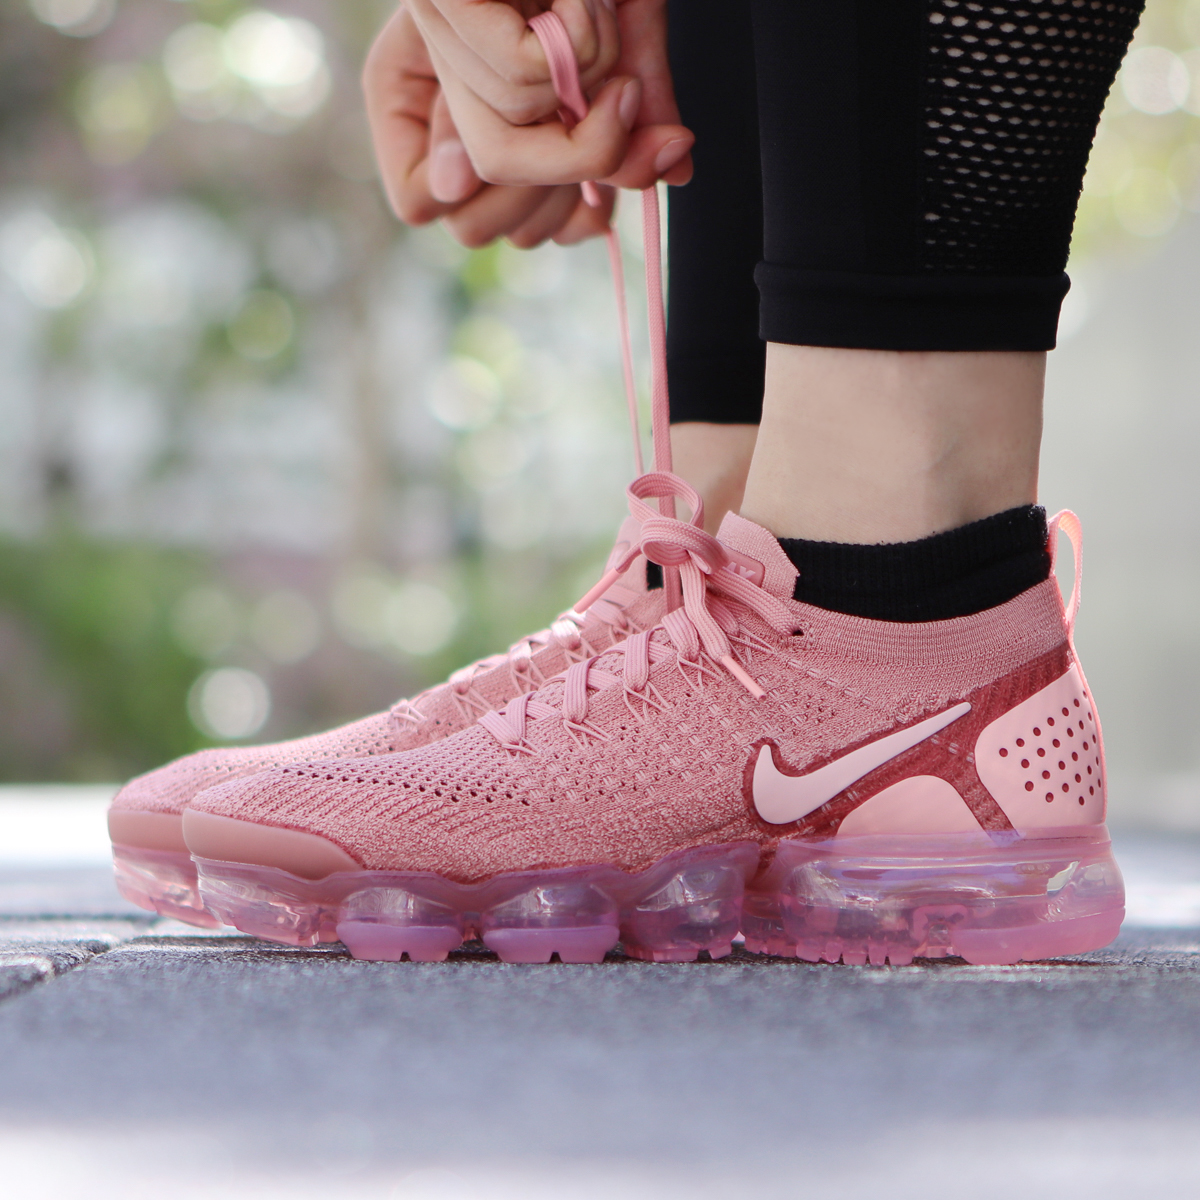 86b2fe76ea8 NIKE W AIR VAPORMAX FLYKNIT 2 (Nike women air vapor max fried food knit 2)  RUST PINK STORM PINK-PINK TINT 18FA-S